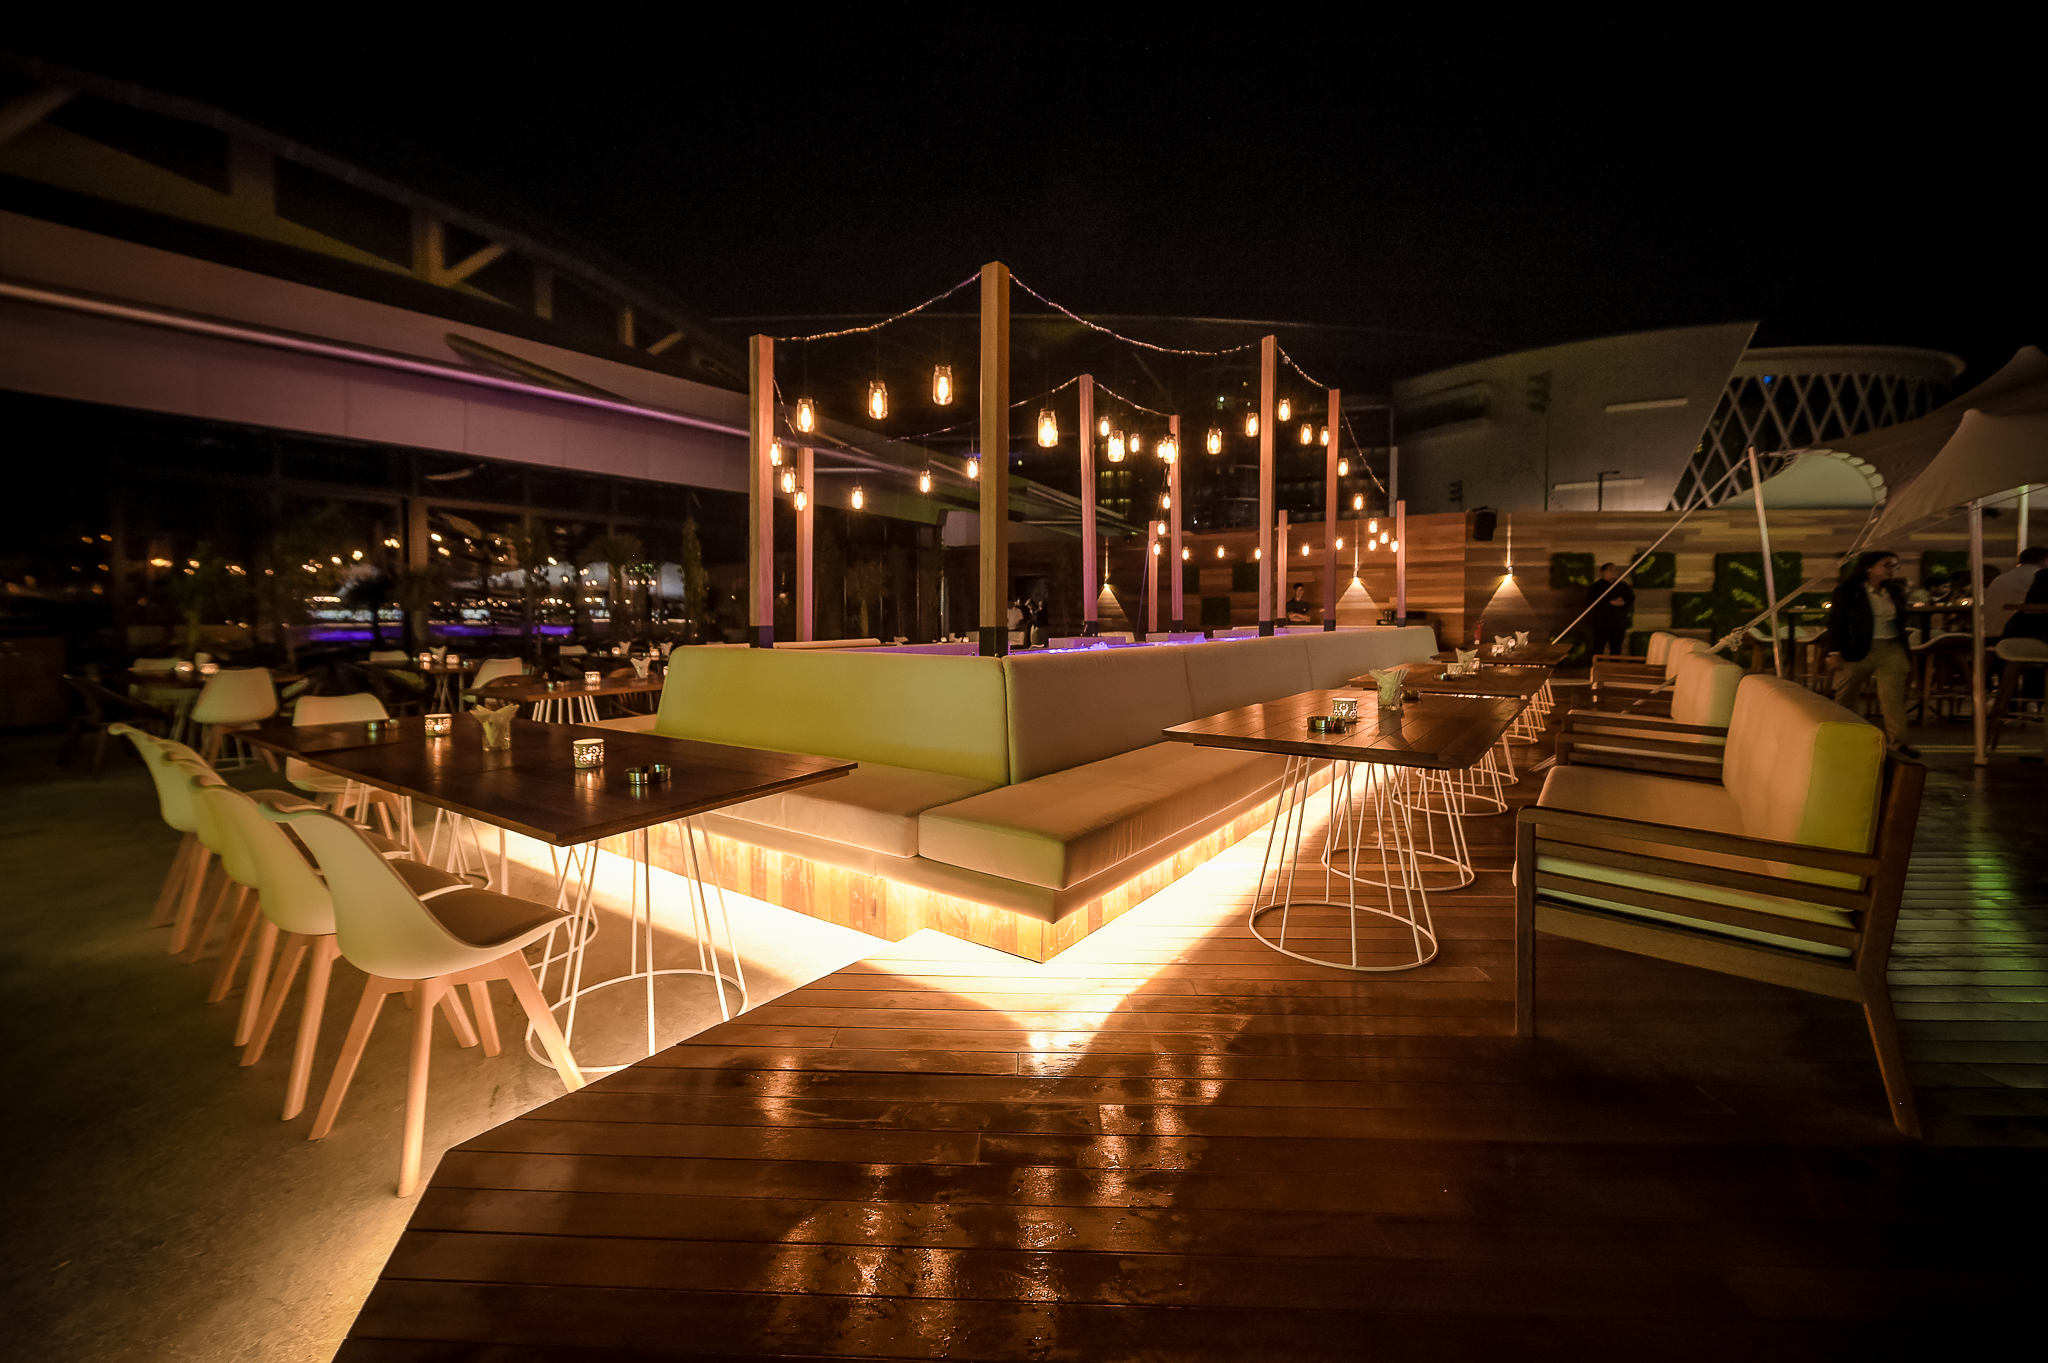 ESCAPE TO SOHO GARDEN EVERY NIGHT OF THE WEEK